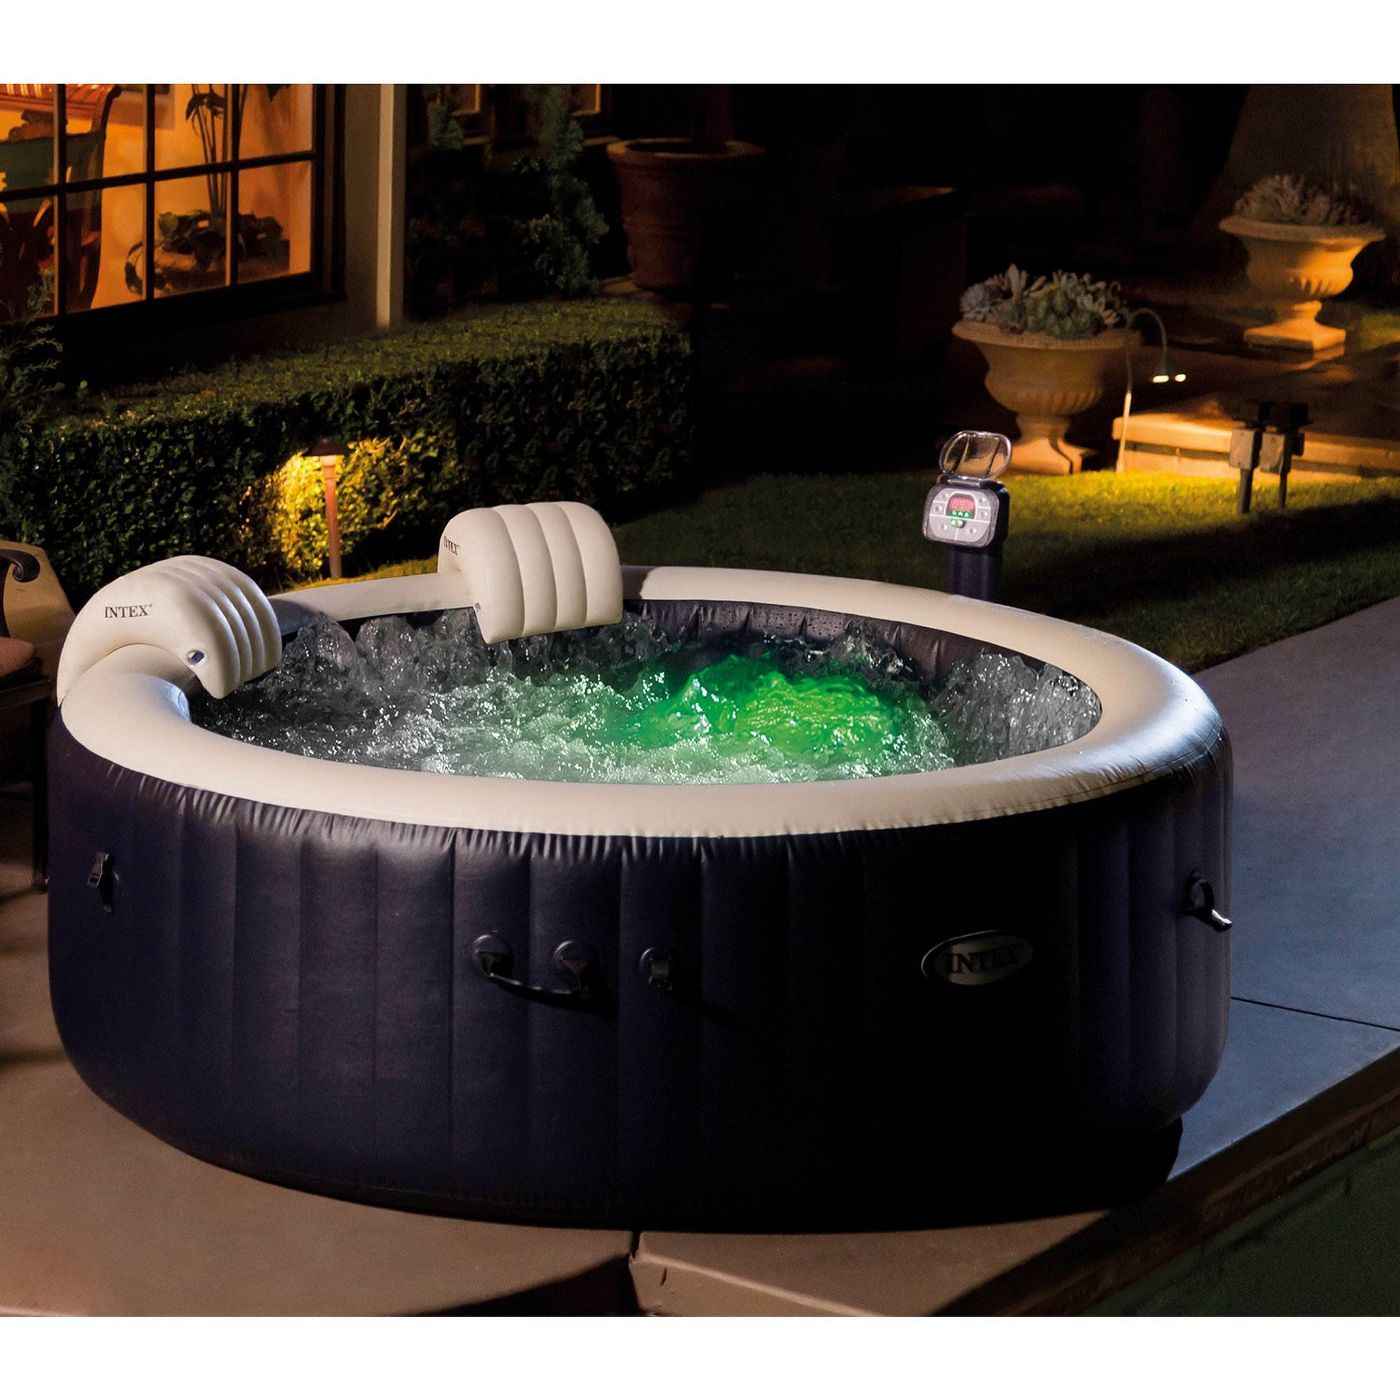 Intex Purespa 4 Person Home Inflatable Portable Heated Bubble Round Hot Tub In 2020 Round Hot Tub Portable Hot Tub Inflatable Hot Tubs